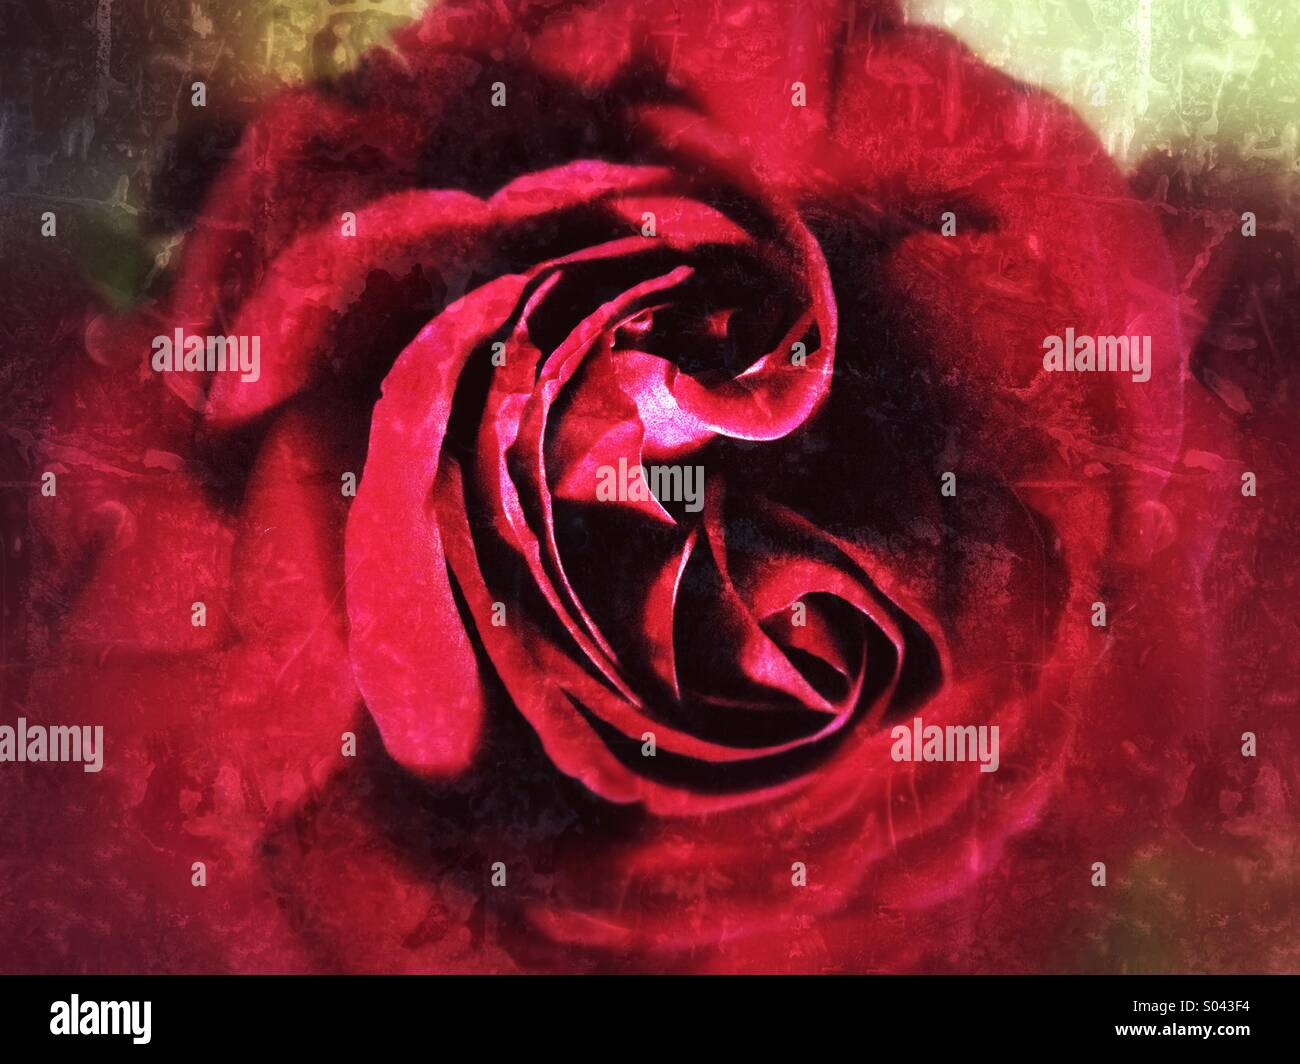 Rose rouge fleur abstract Photo Stock